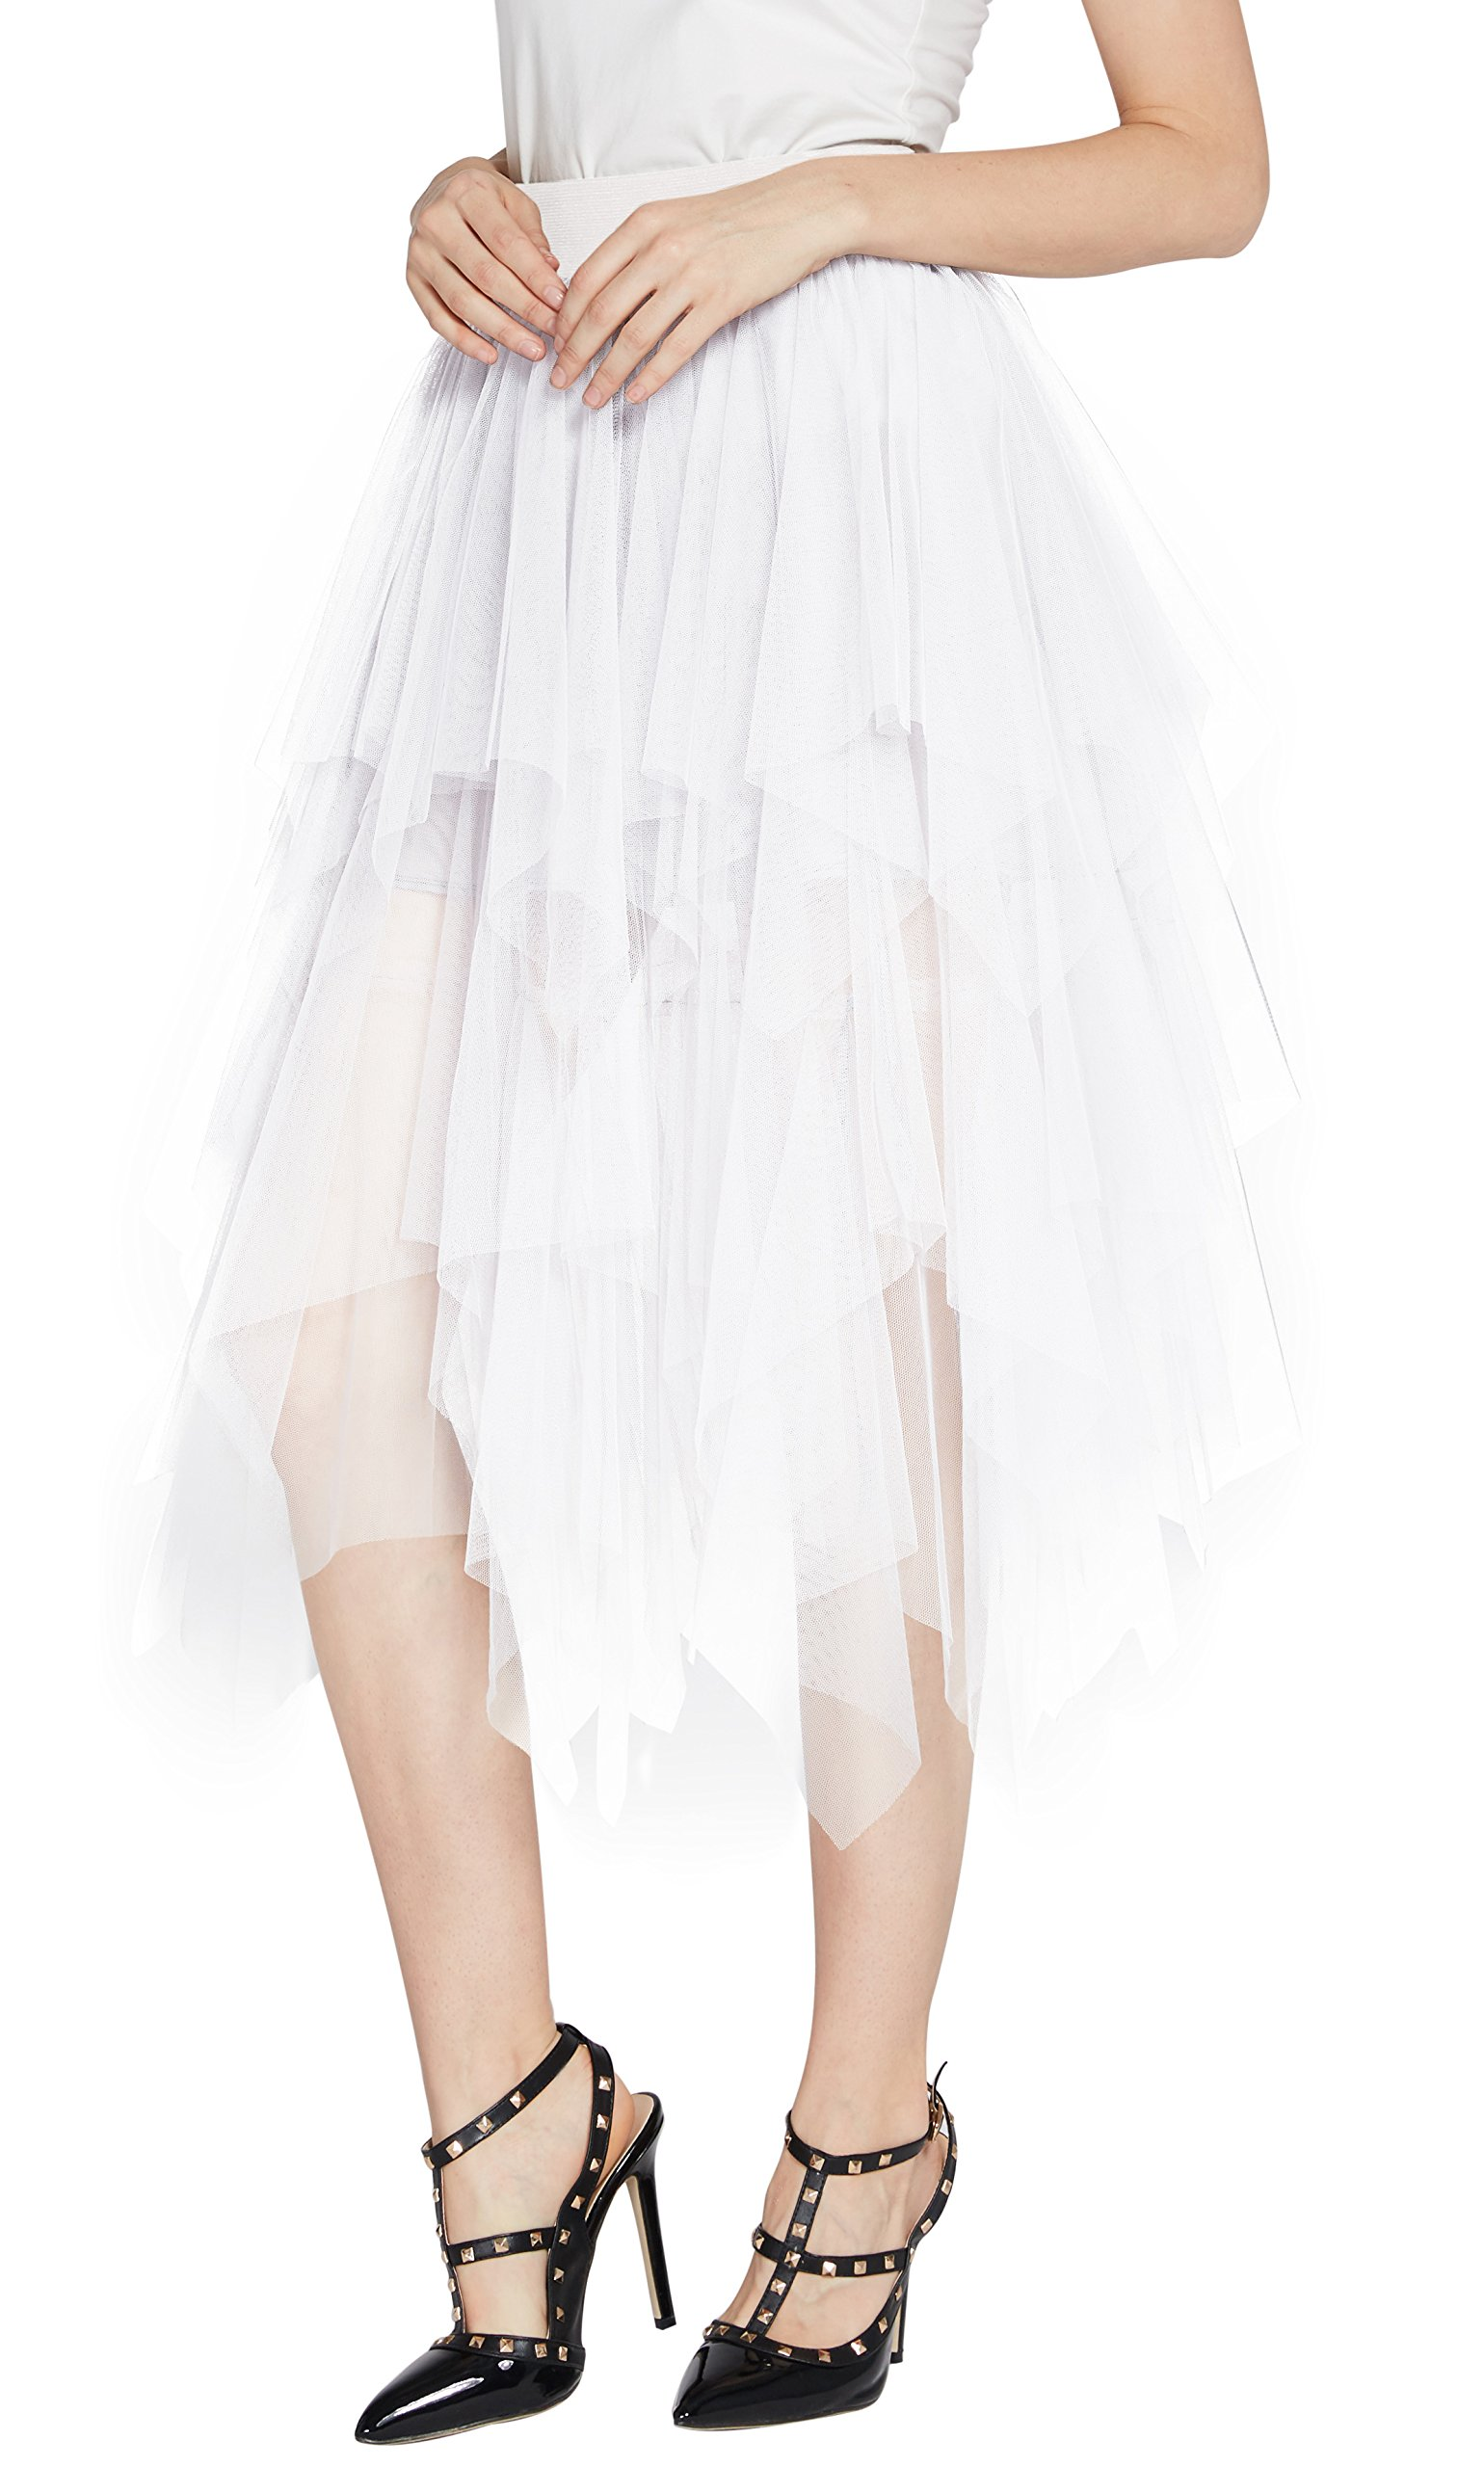 Urban CoCo Women's Sheer Tutu Skirt Tulle Mesh Layered Midi Skirt (M, White-2)